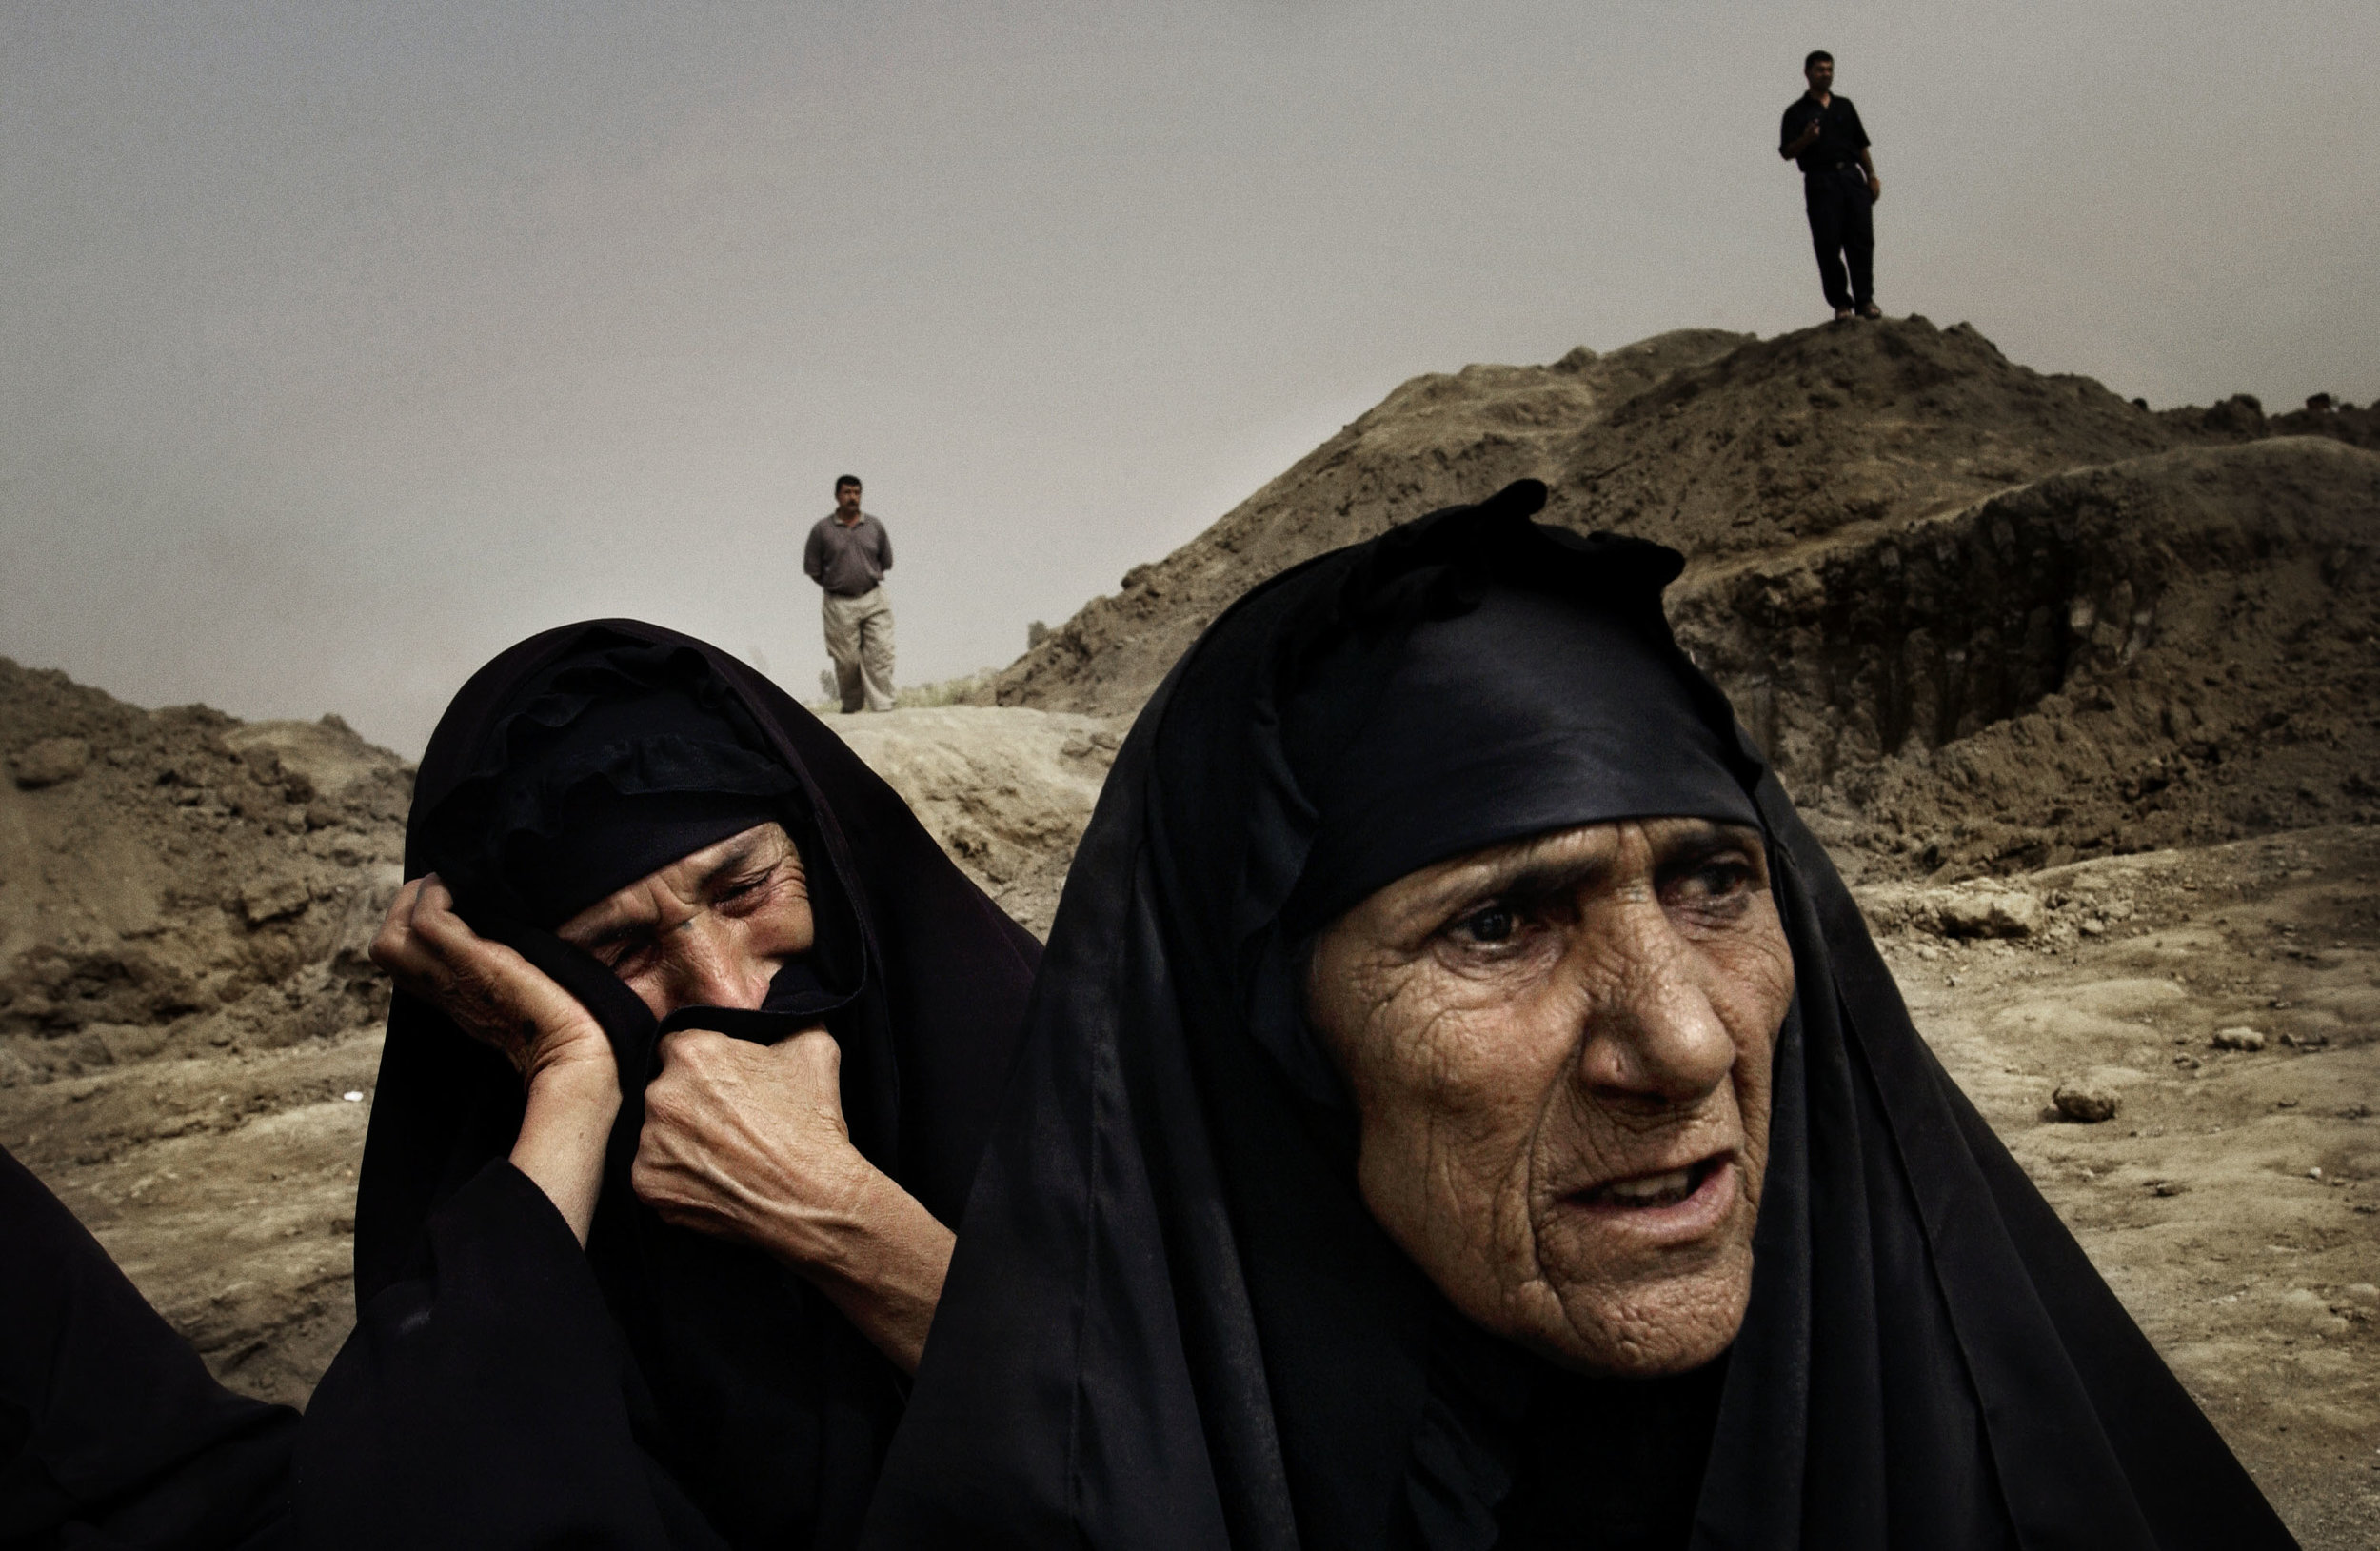 Iraq, Al-Mahawil, May 2003, Thousands of bodies exhumed at mass gravesites.